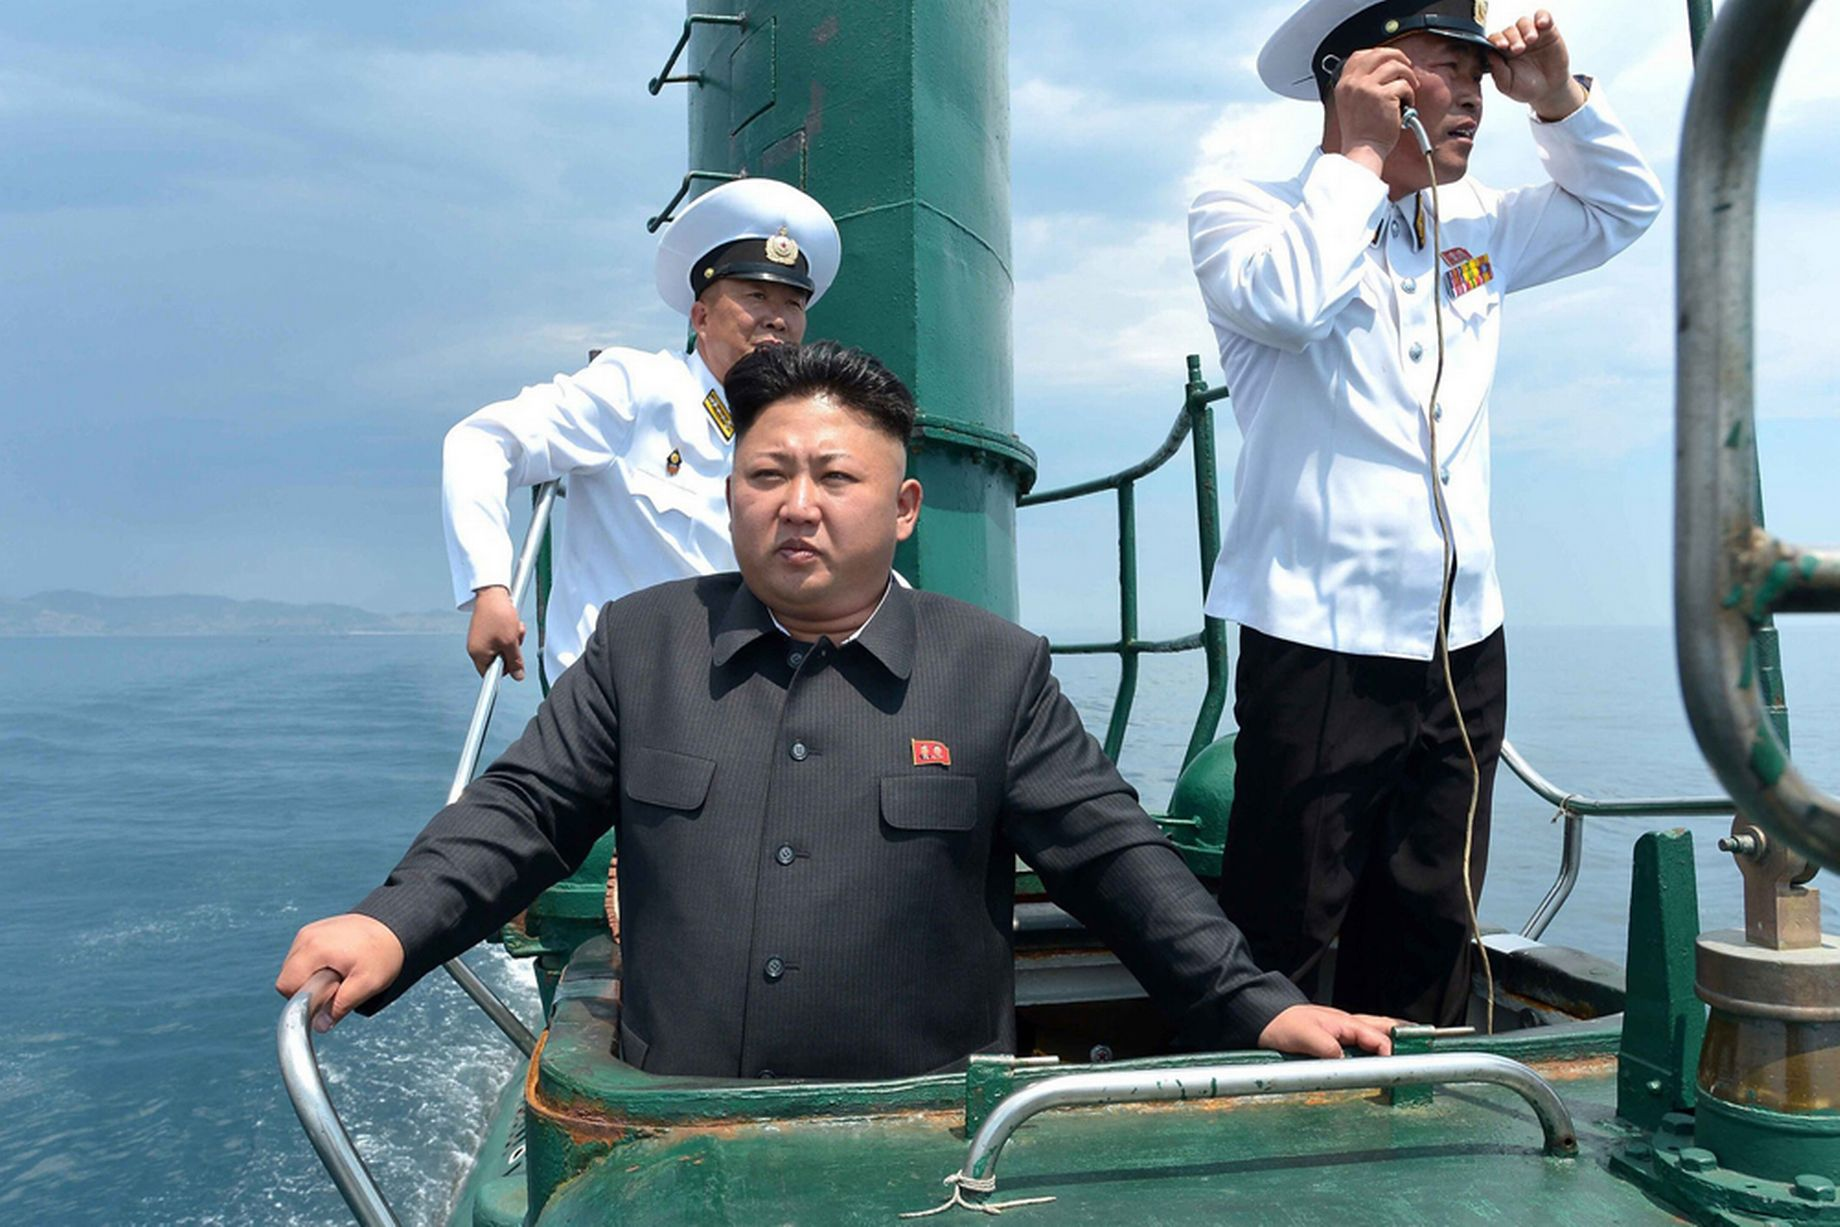 Kim-Jong-Un-inspecting-a-submarine-of-the-Korean-Peoples-Army